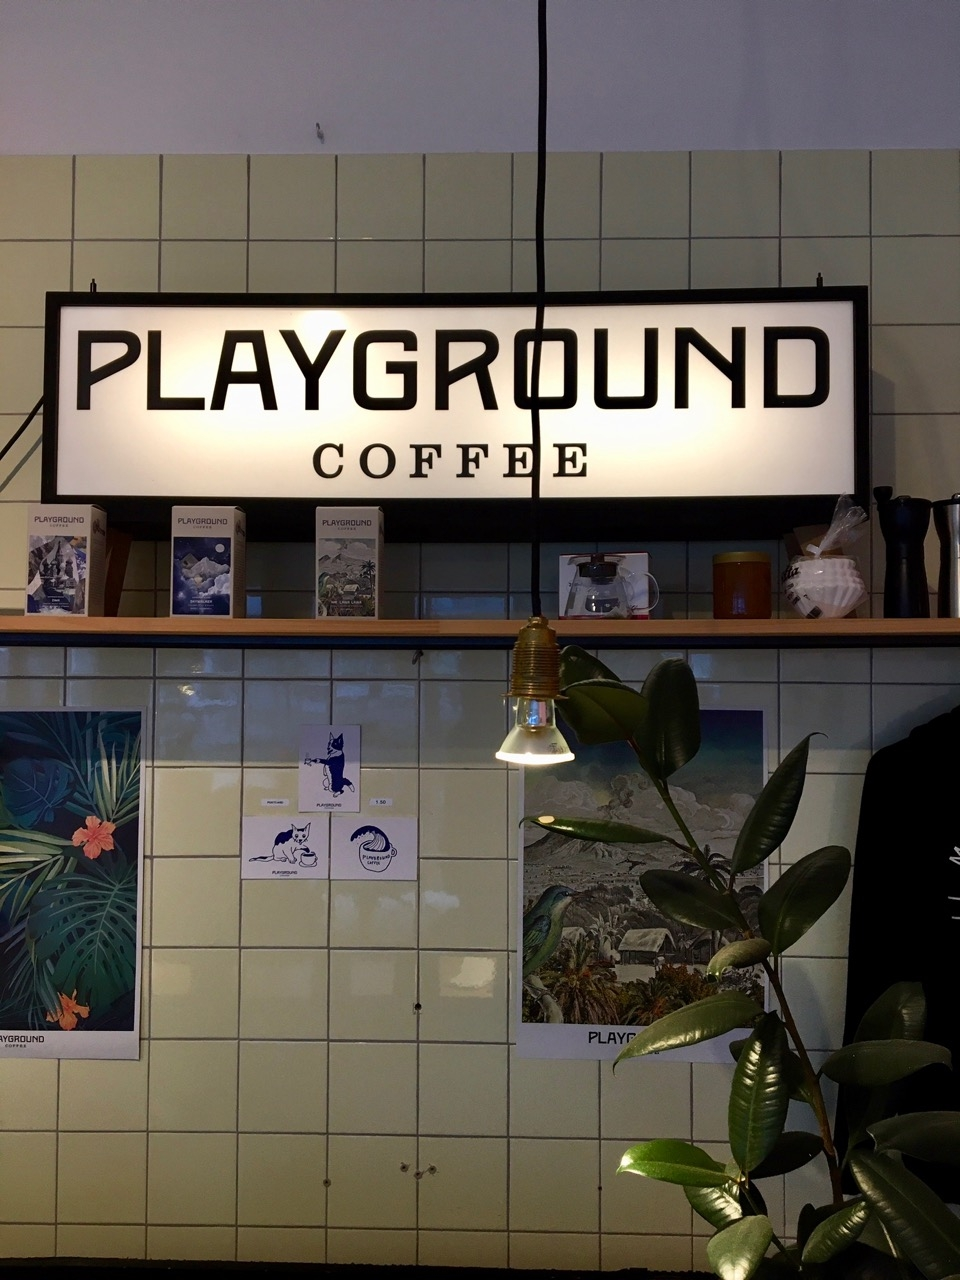 Playground_coffee_hamborg